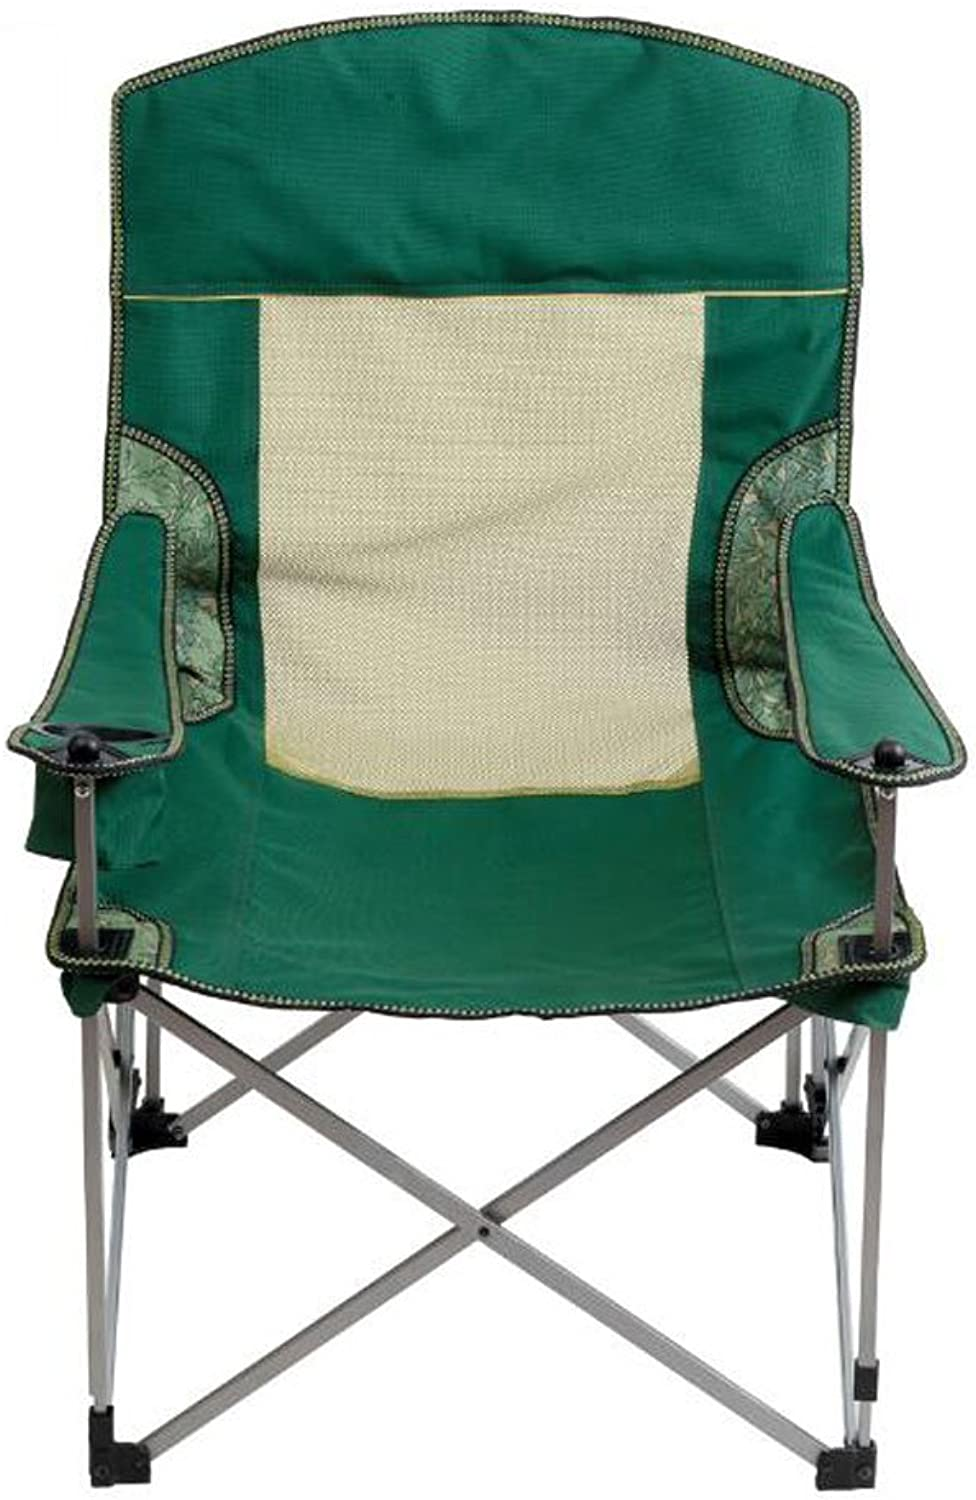 Single Lounge Chair Reclining Can Sit Dual Use Multifunctional Recliner